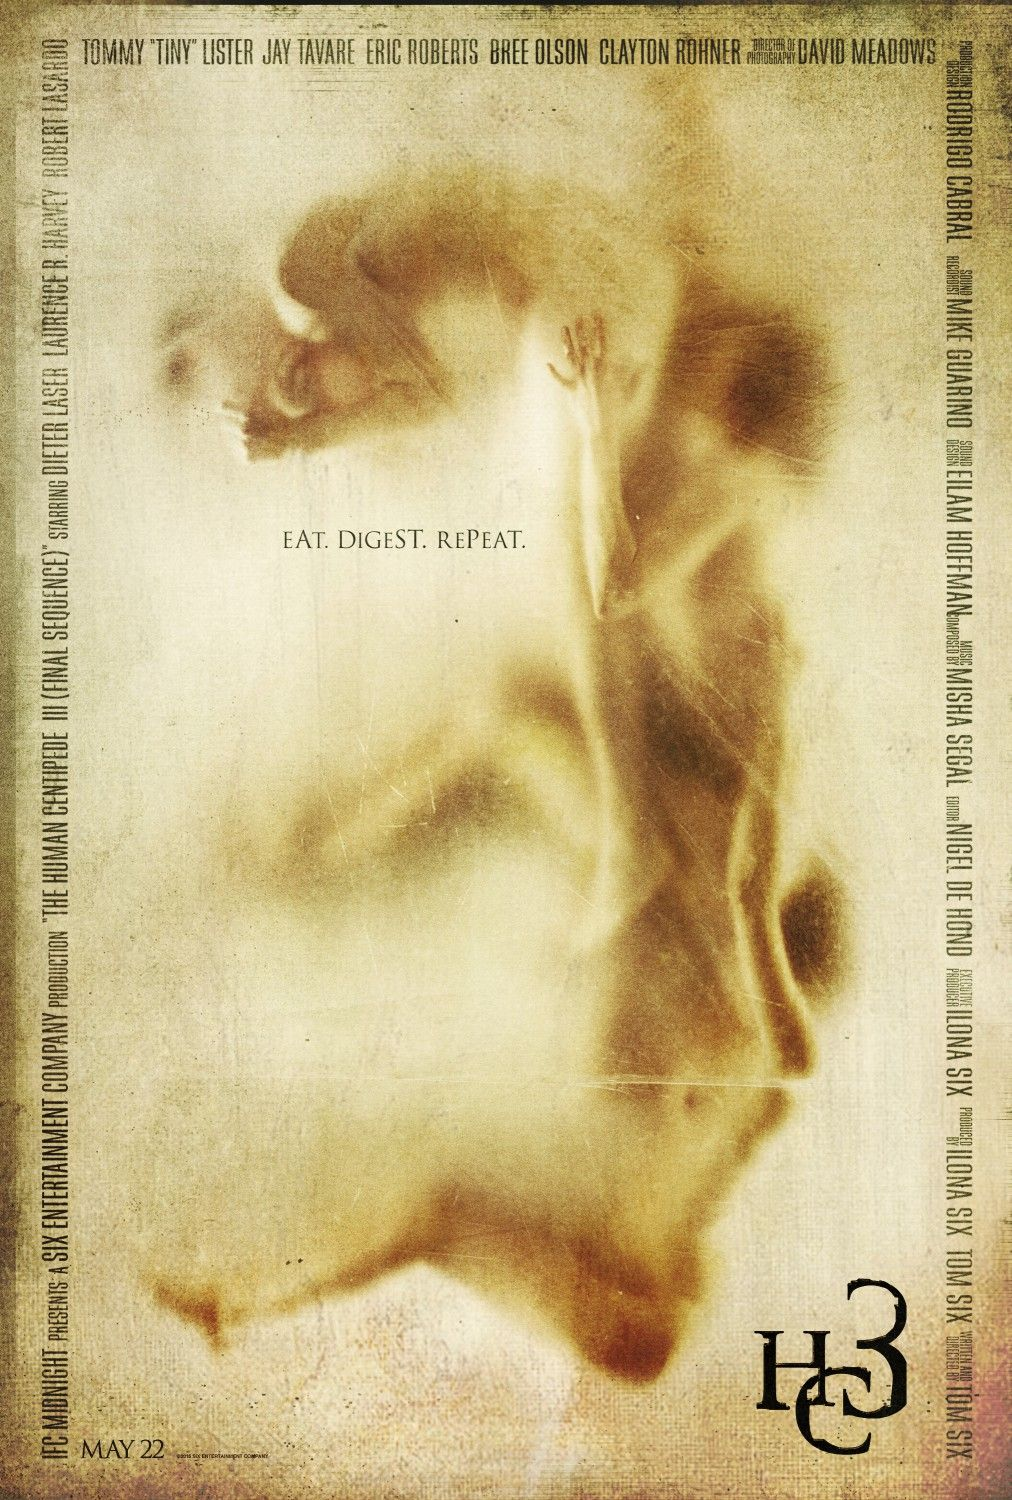 The Human Centipede 3 Extra Large Movie Poster Image Internet Movie Poster Awards Gallery Centipede Movie Posters Movie Posters Design